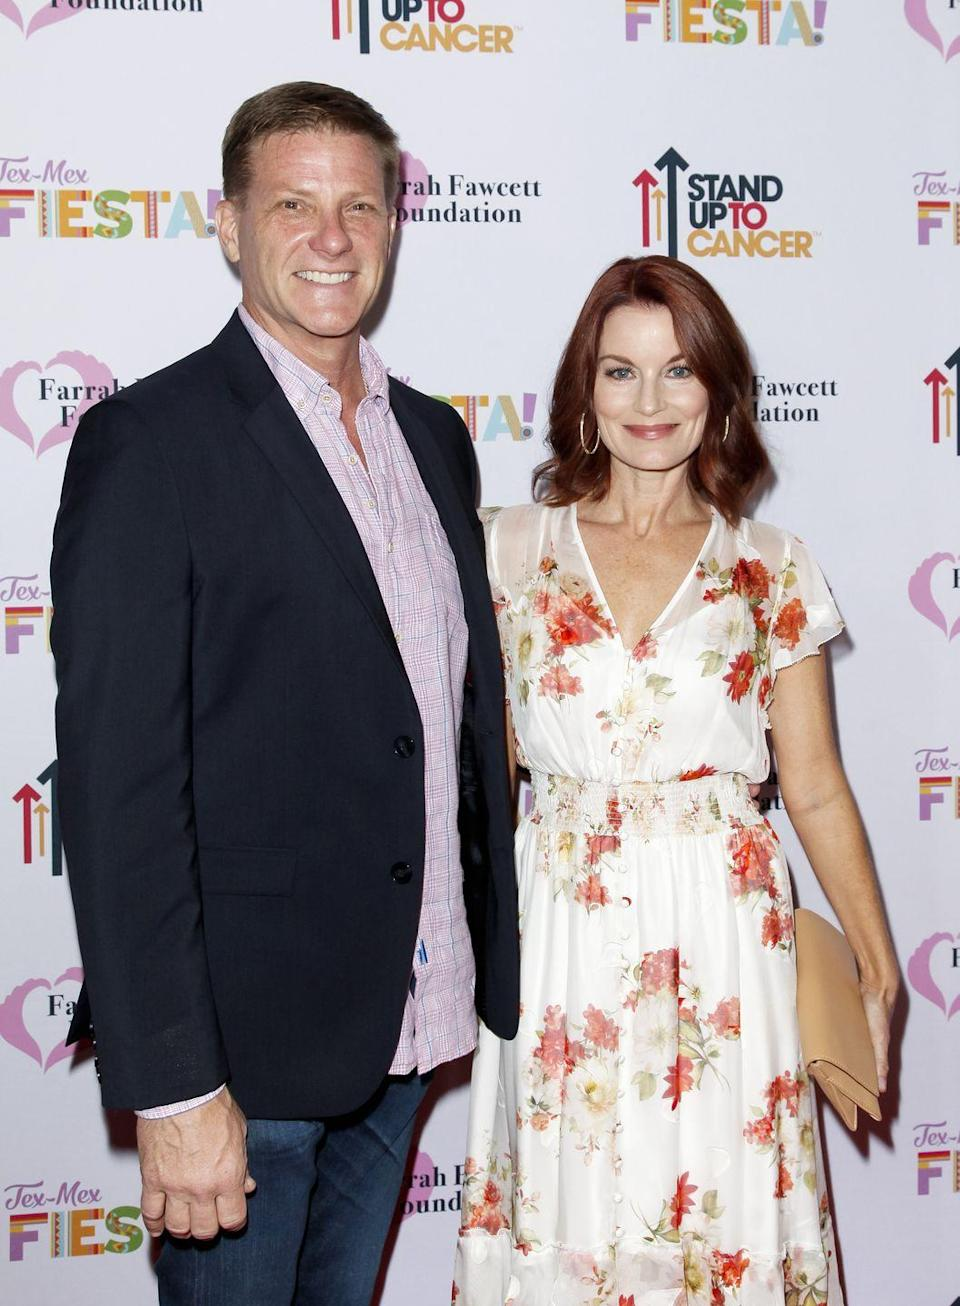 <p>Pictured here with his wife (and former <em>Melrose Place</em> co-star) Laura Leighton, Savant has been seen in guest appearances on <em>Criminal Minds, Lucifer,</em> and <em>NCIS</em>. </p>